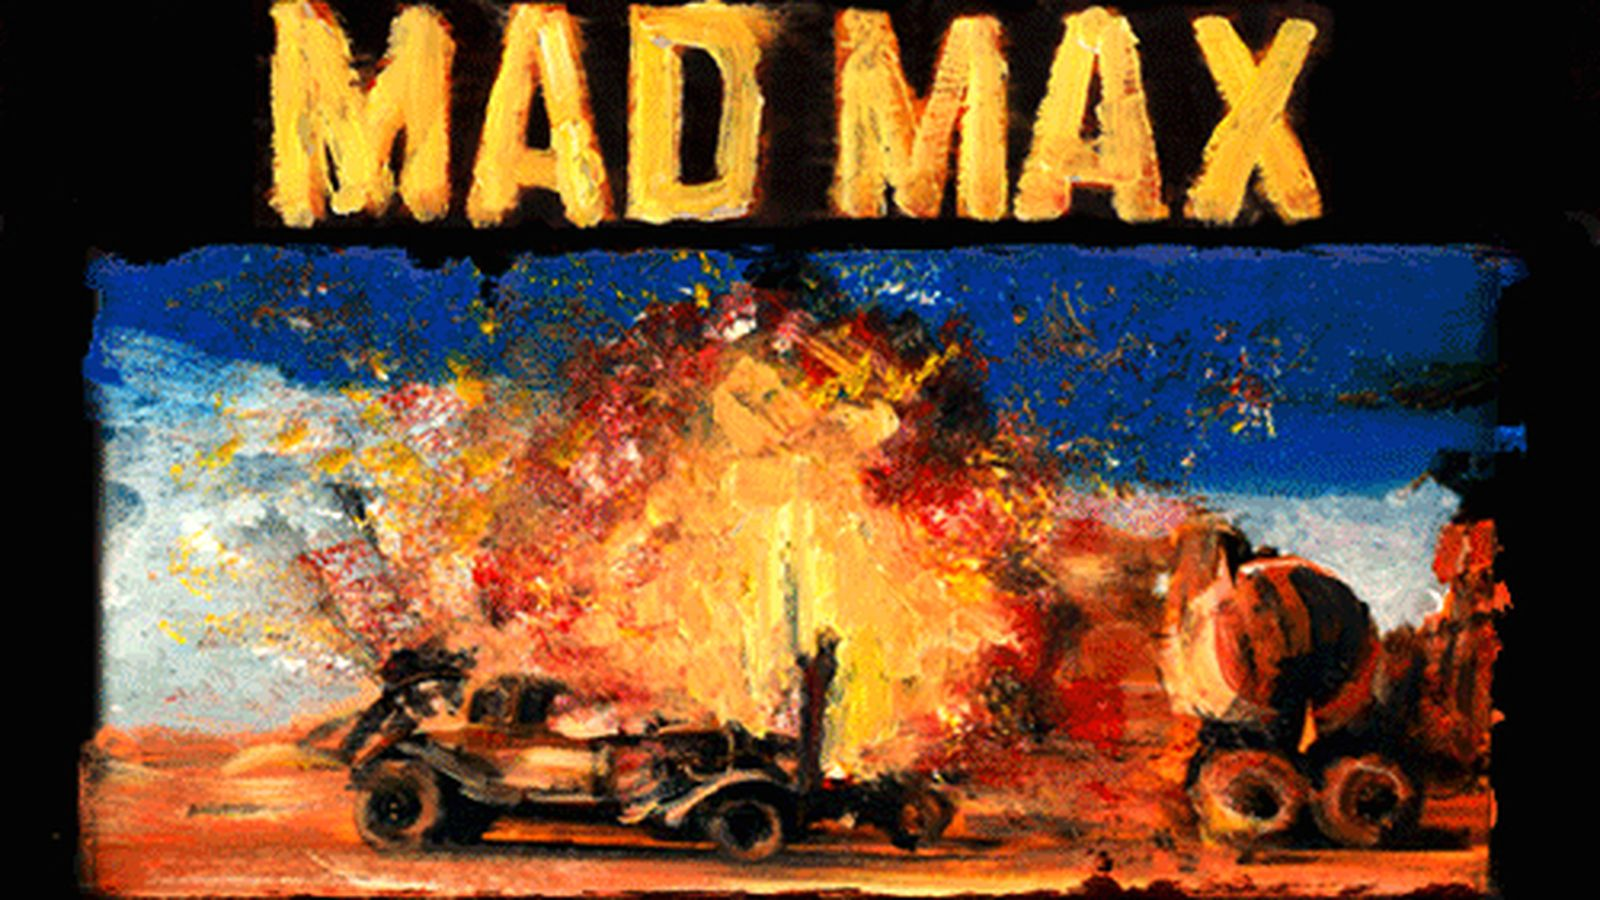 This Beautiful Mad Max Poster Is Animated With Oil